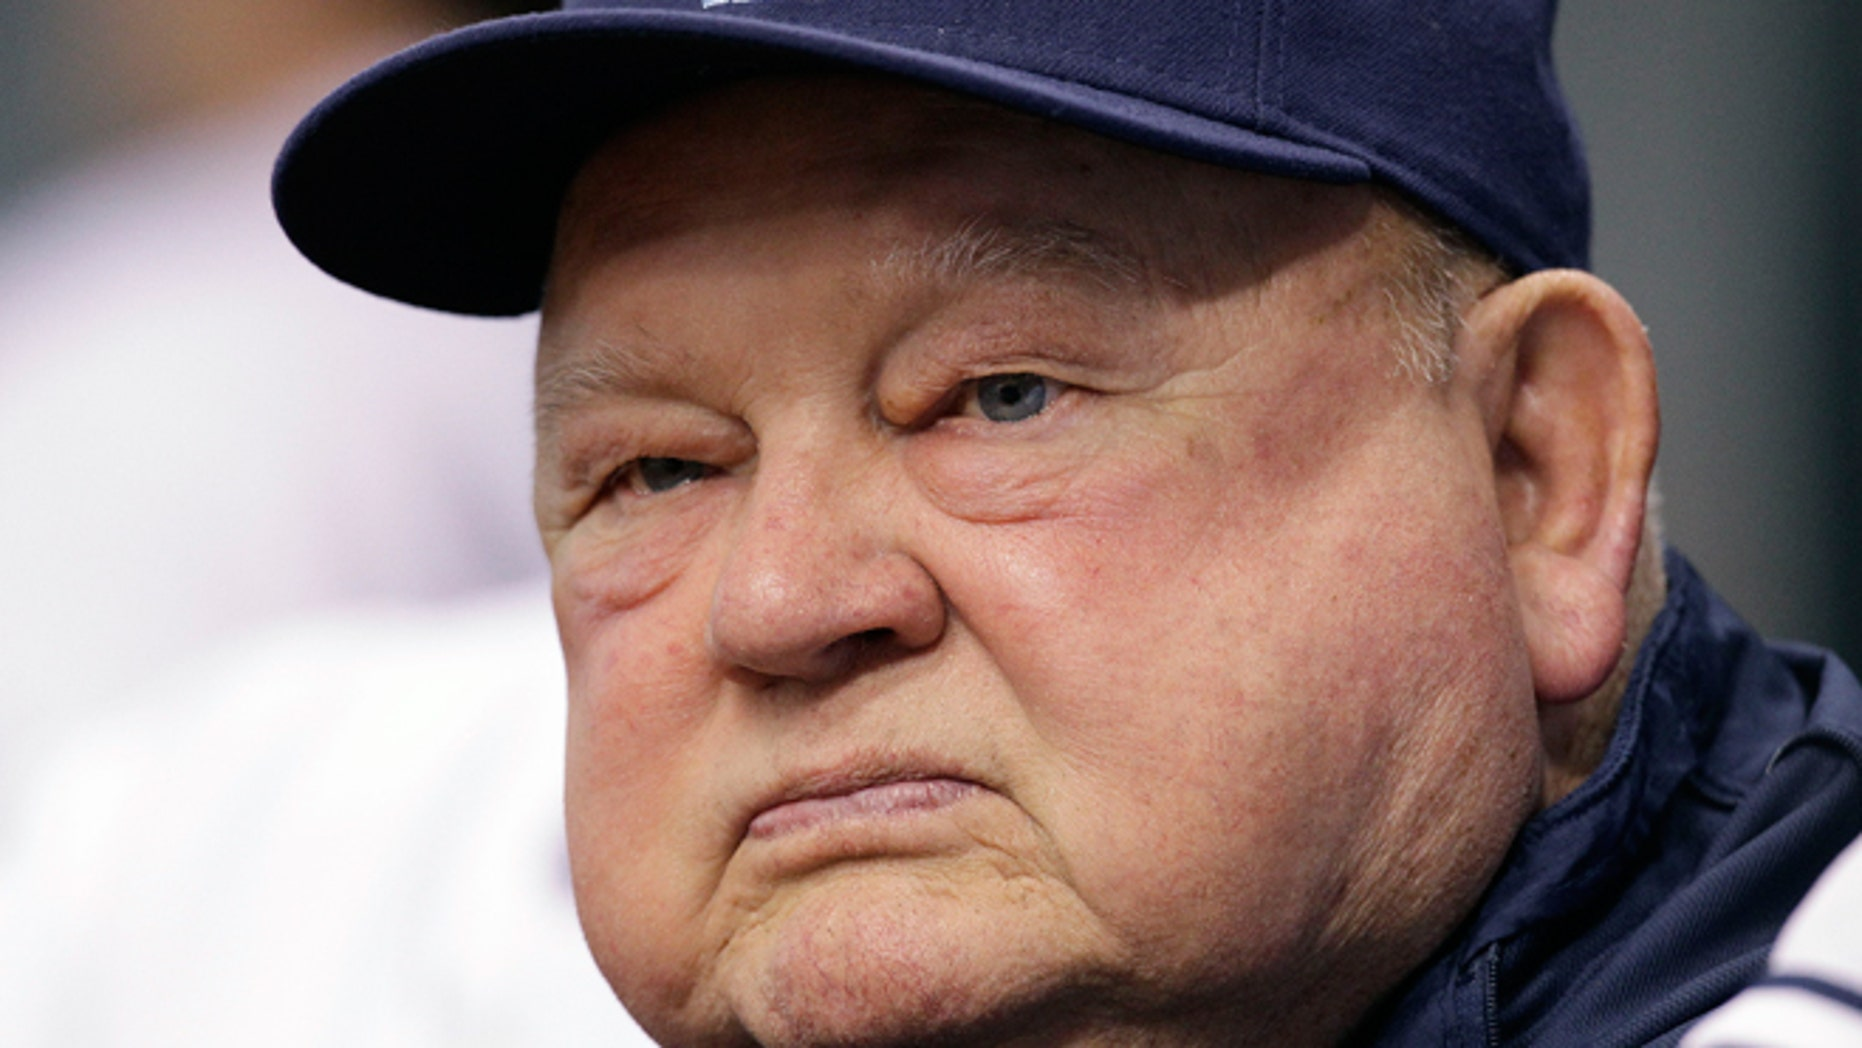 FILE - Sept. 1, 2010: Tampa Bay Rays special adviser Don Zimmer looks on during a baseball game between the Tampa Bay Rays and the Toronto Blue Jays in St. Petersburg, Fla. Don Zimmer, a popular fixture in professional baseball for 66 years as a manager, player, coach and executive died on June 4, 2014. He was 83.